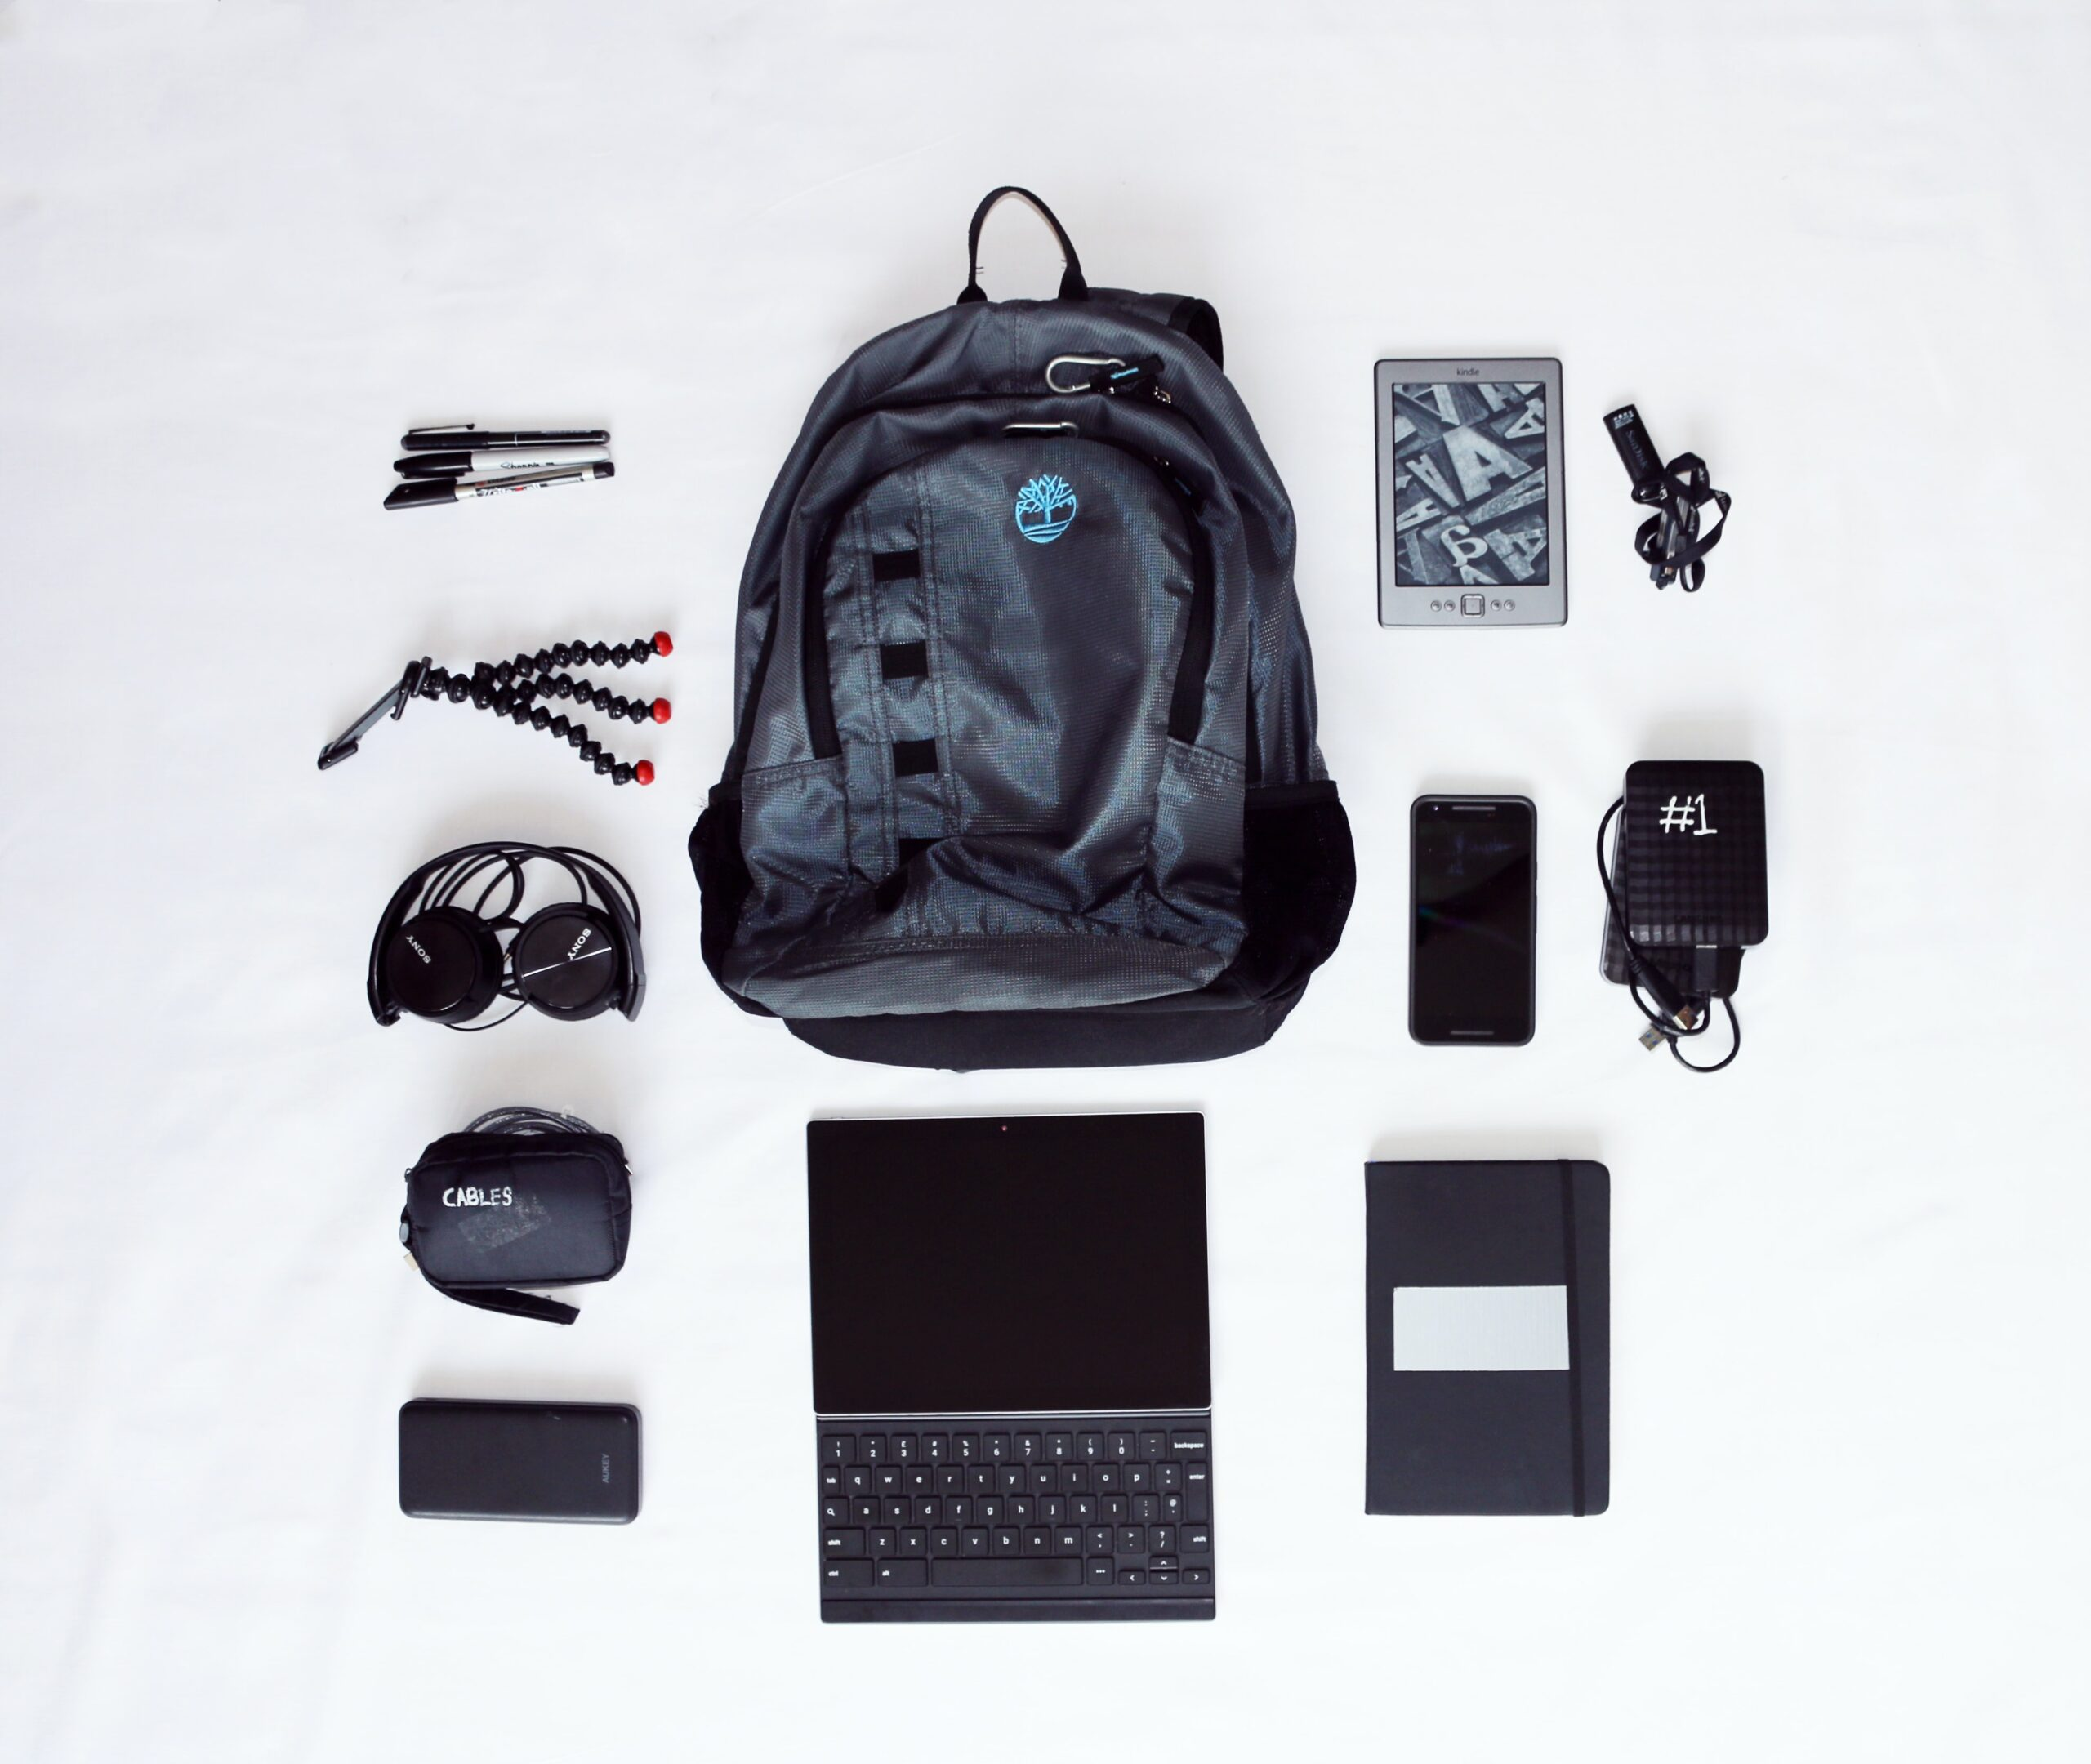 essentials that should be included in a teacher's bag